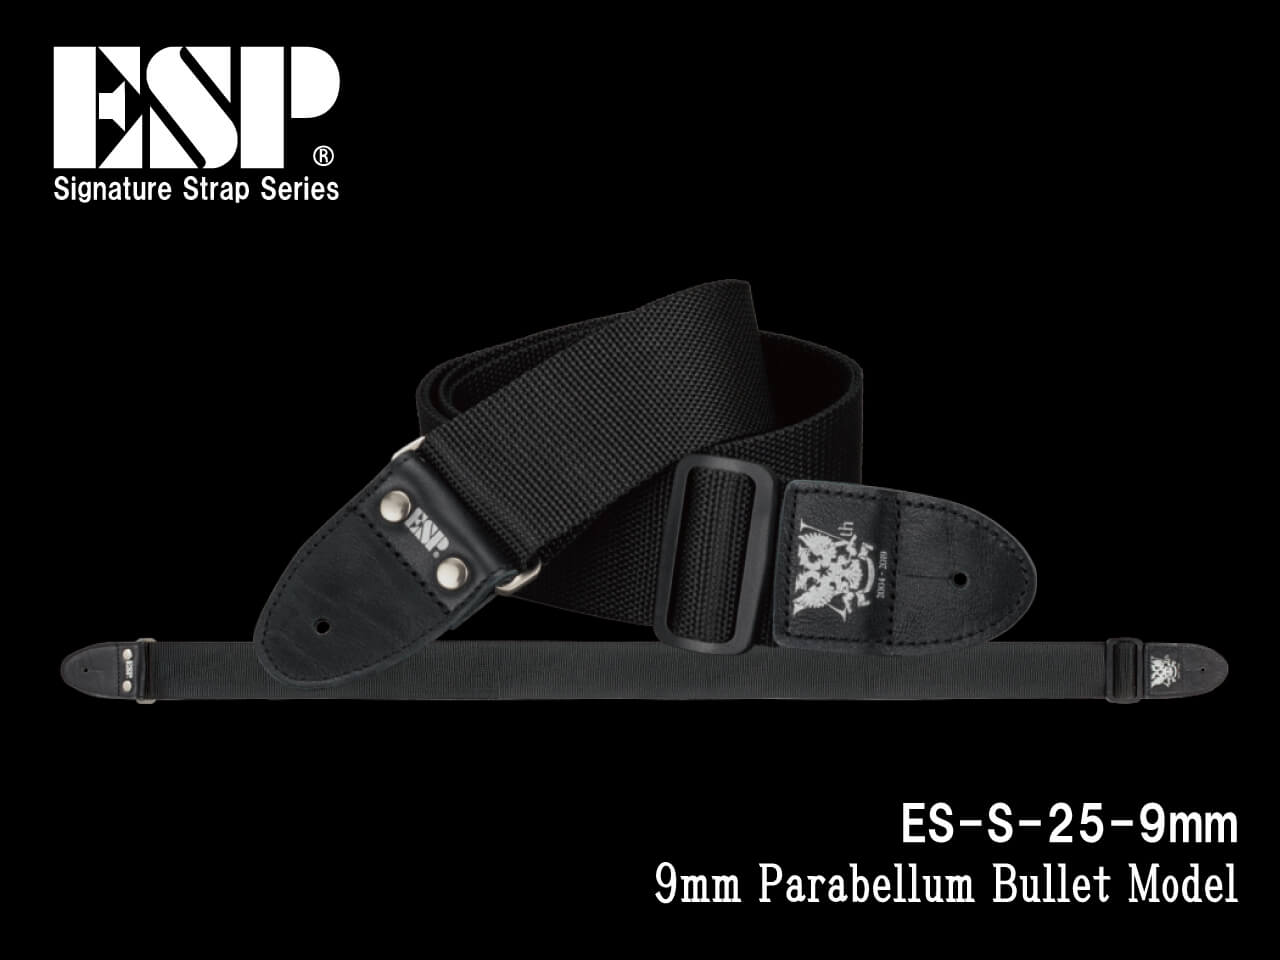 ESP(イーエスピー) Signature Strap Series ES-S-25-9mm (9mm Parabellum Bullet Model)